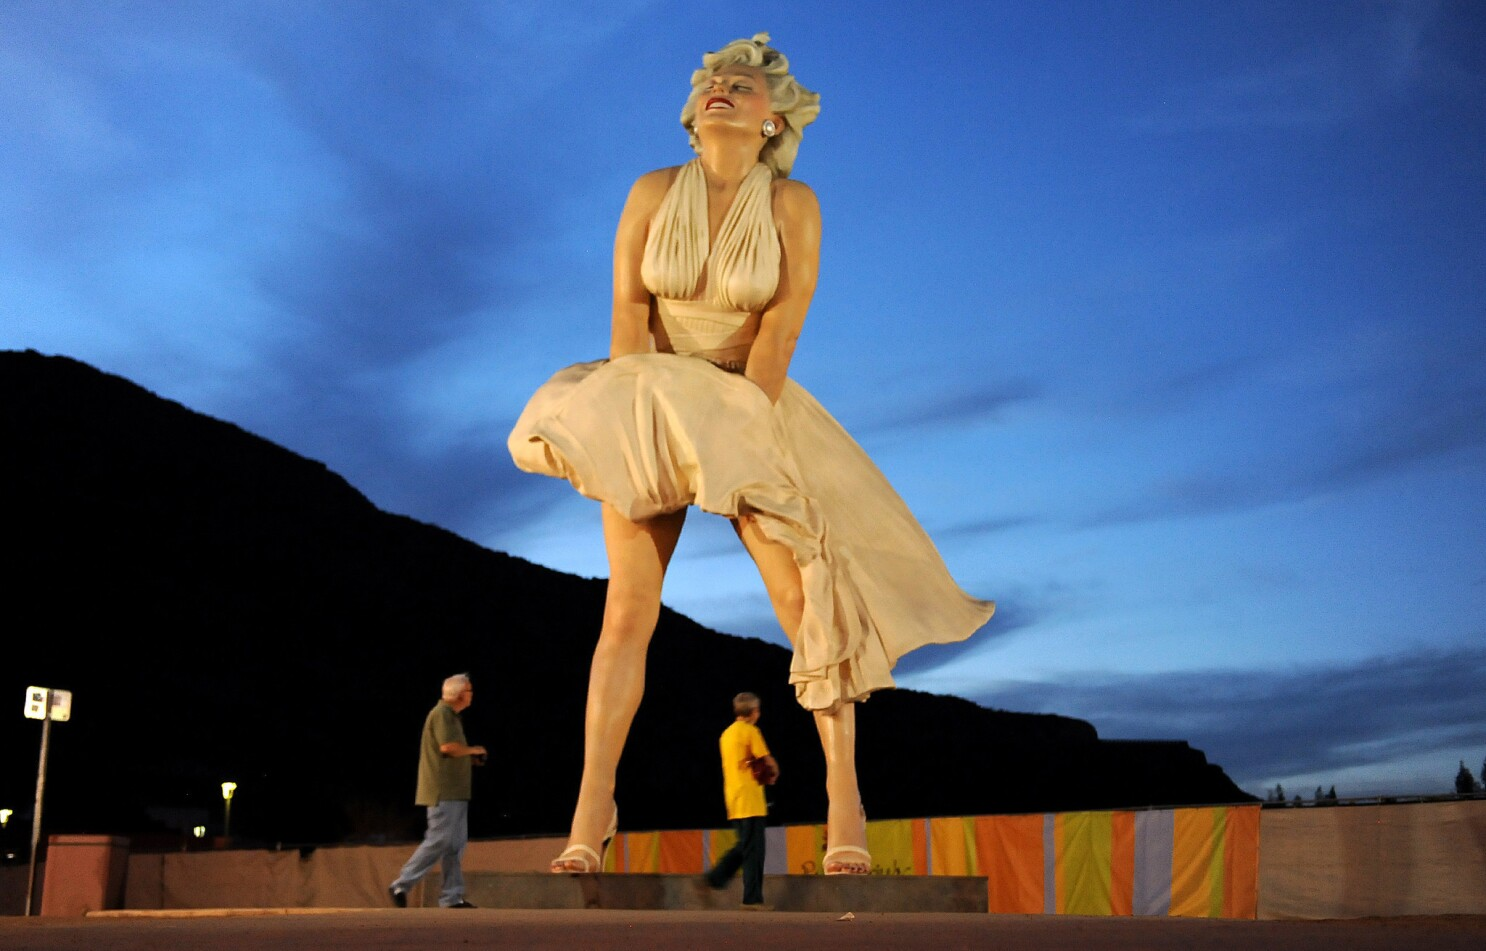 'Forever Marilyn' statue of Marilyn Monroe gets permanent Palm Springs home